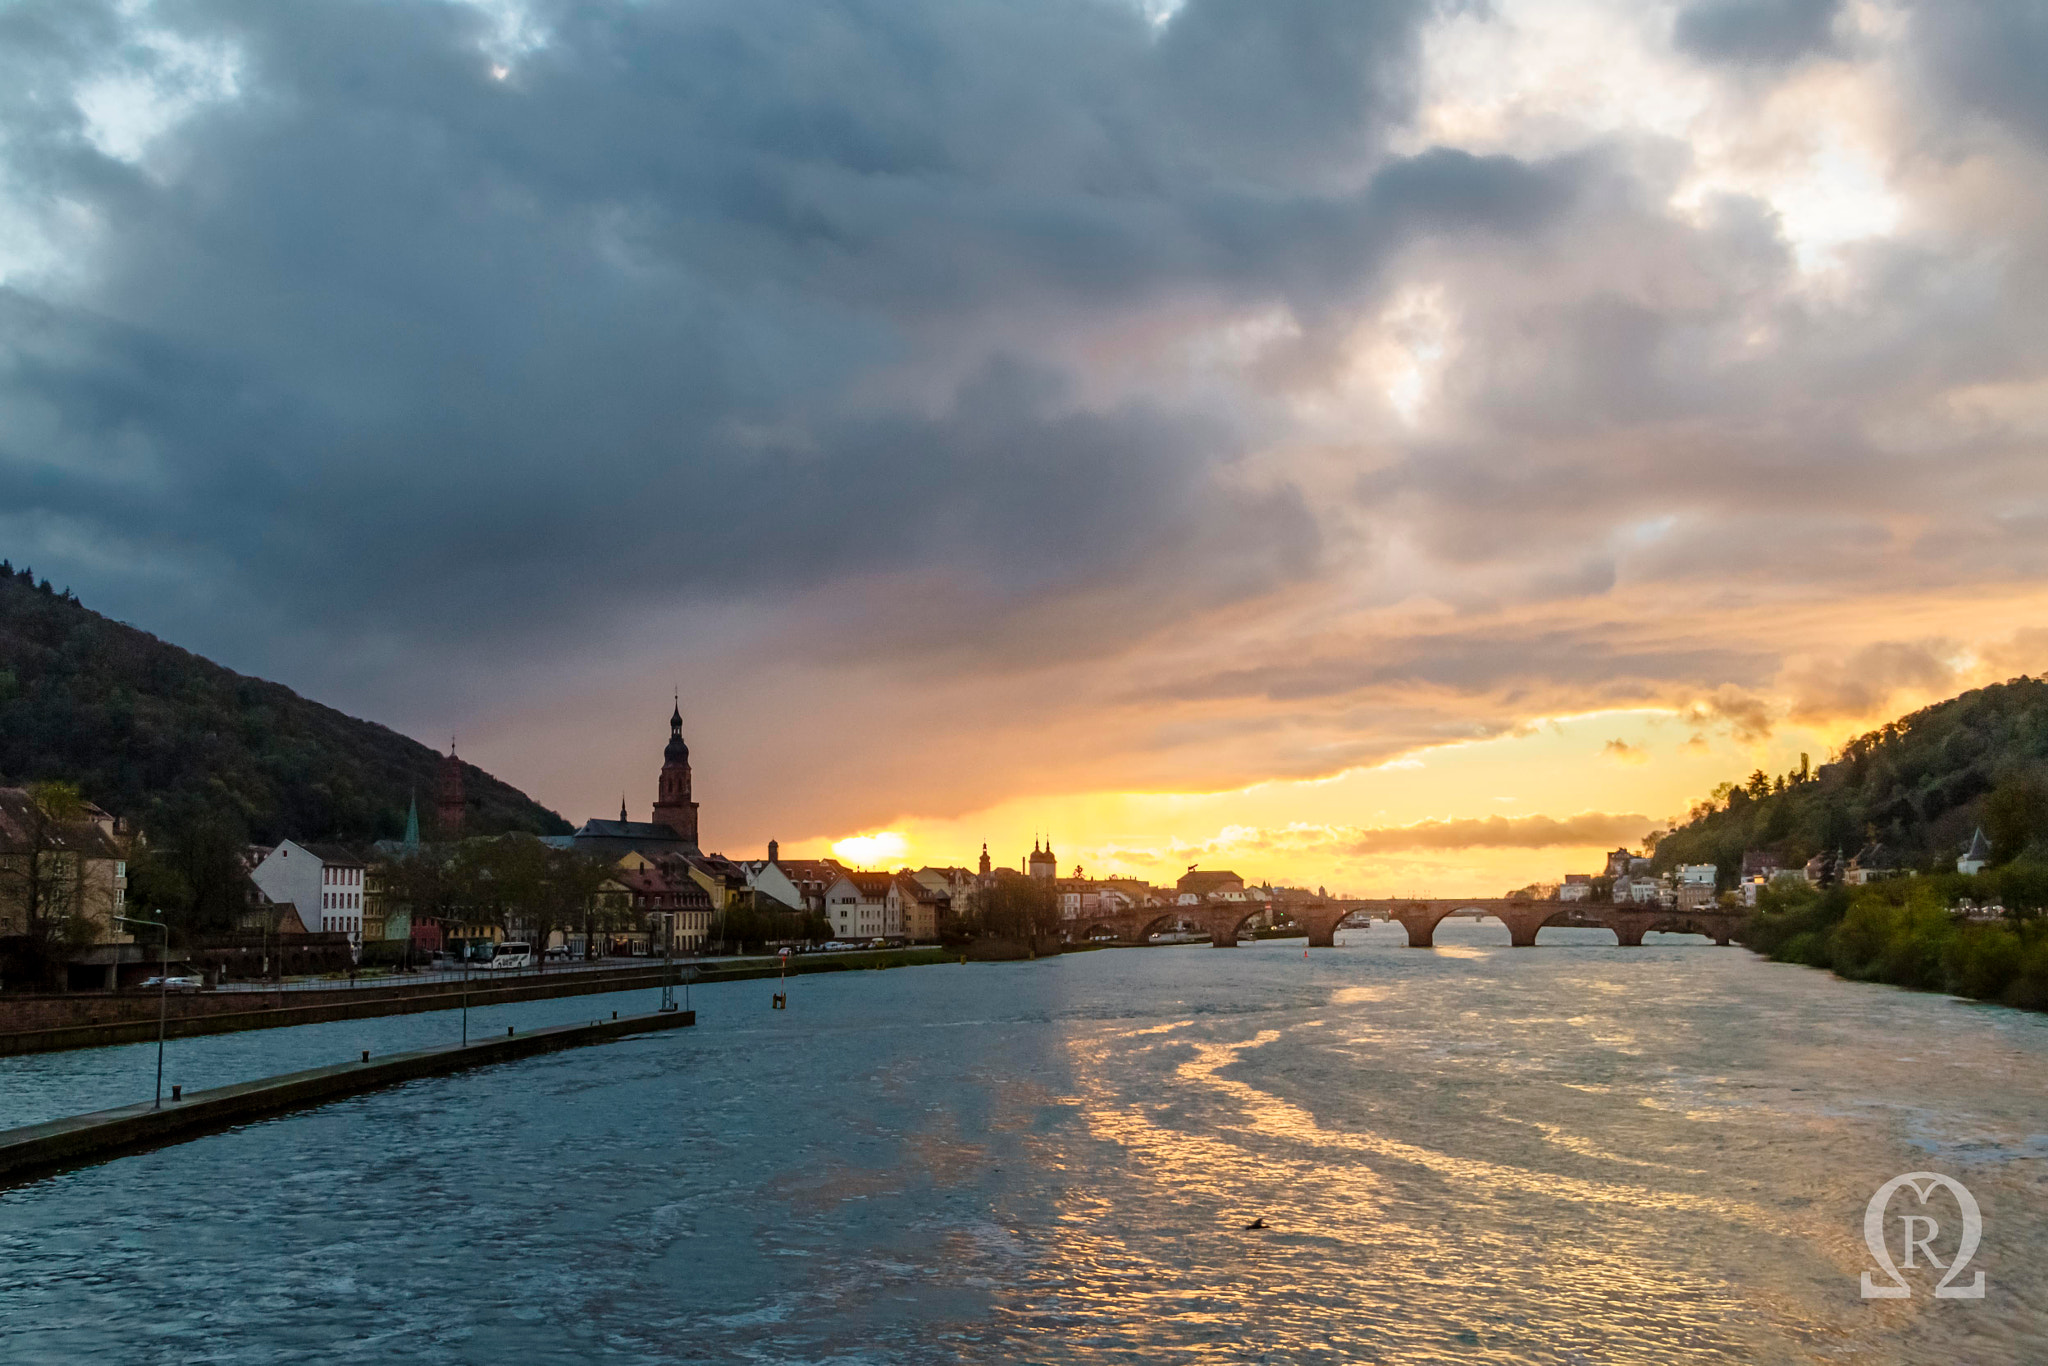 Photograph Heidelberg - Stormy Sunset by Michal Renee on 500px